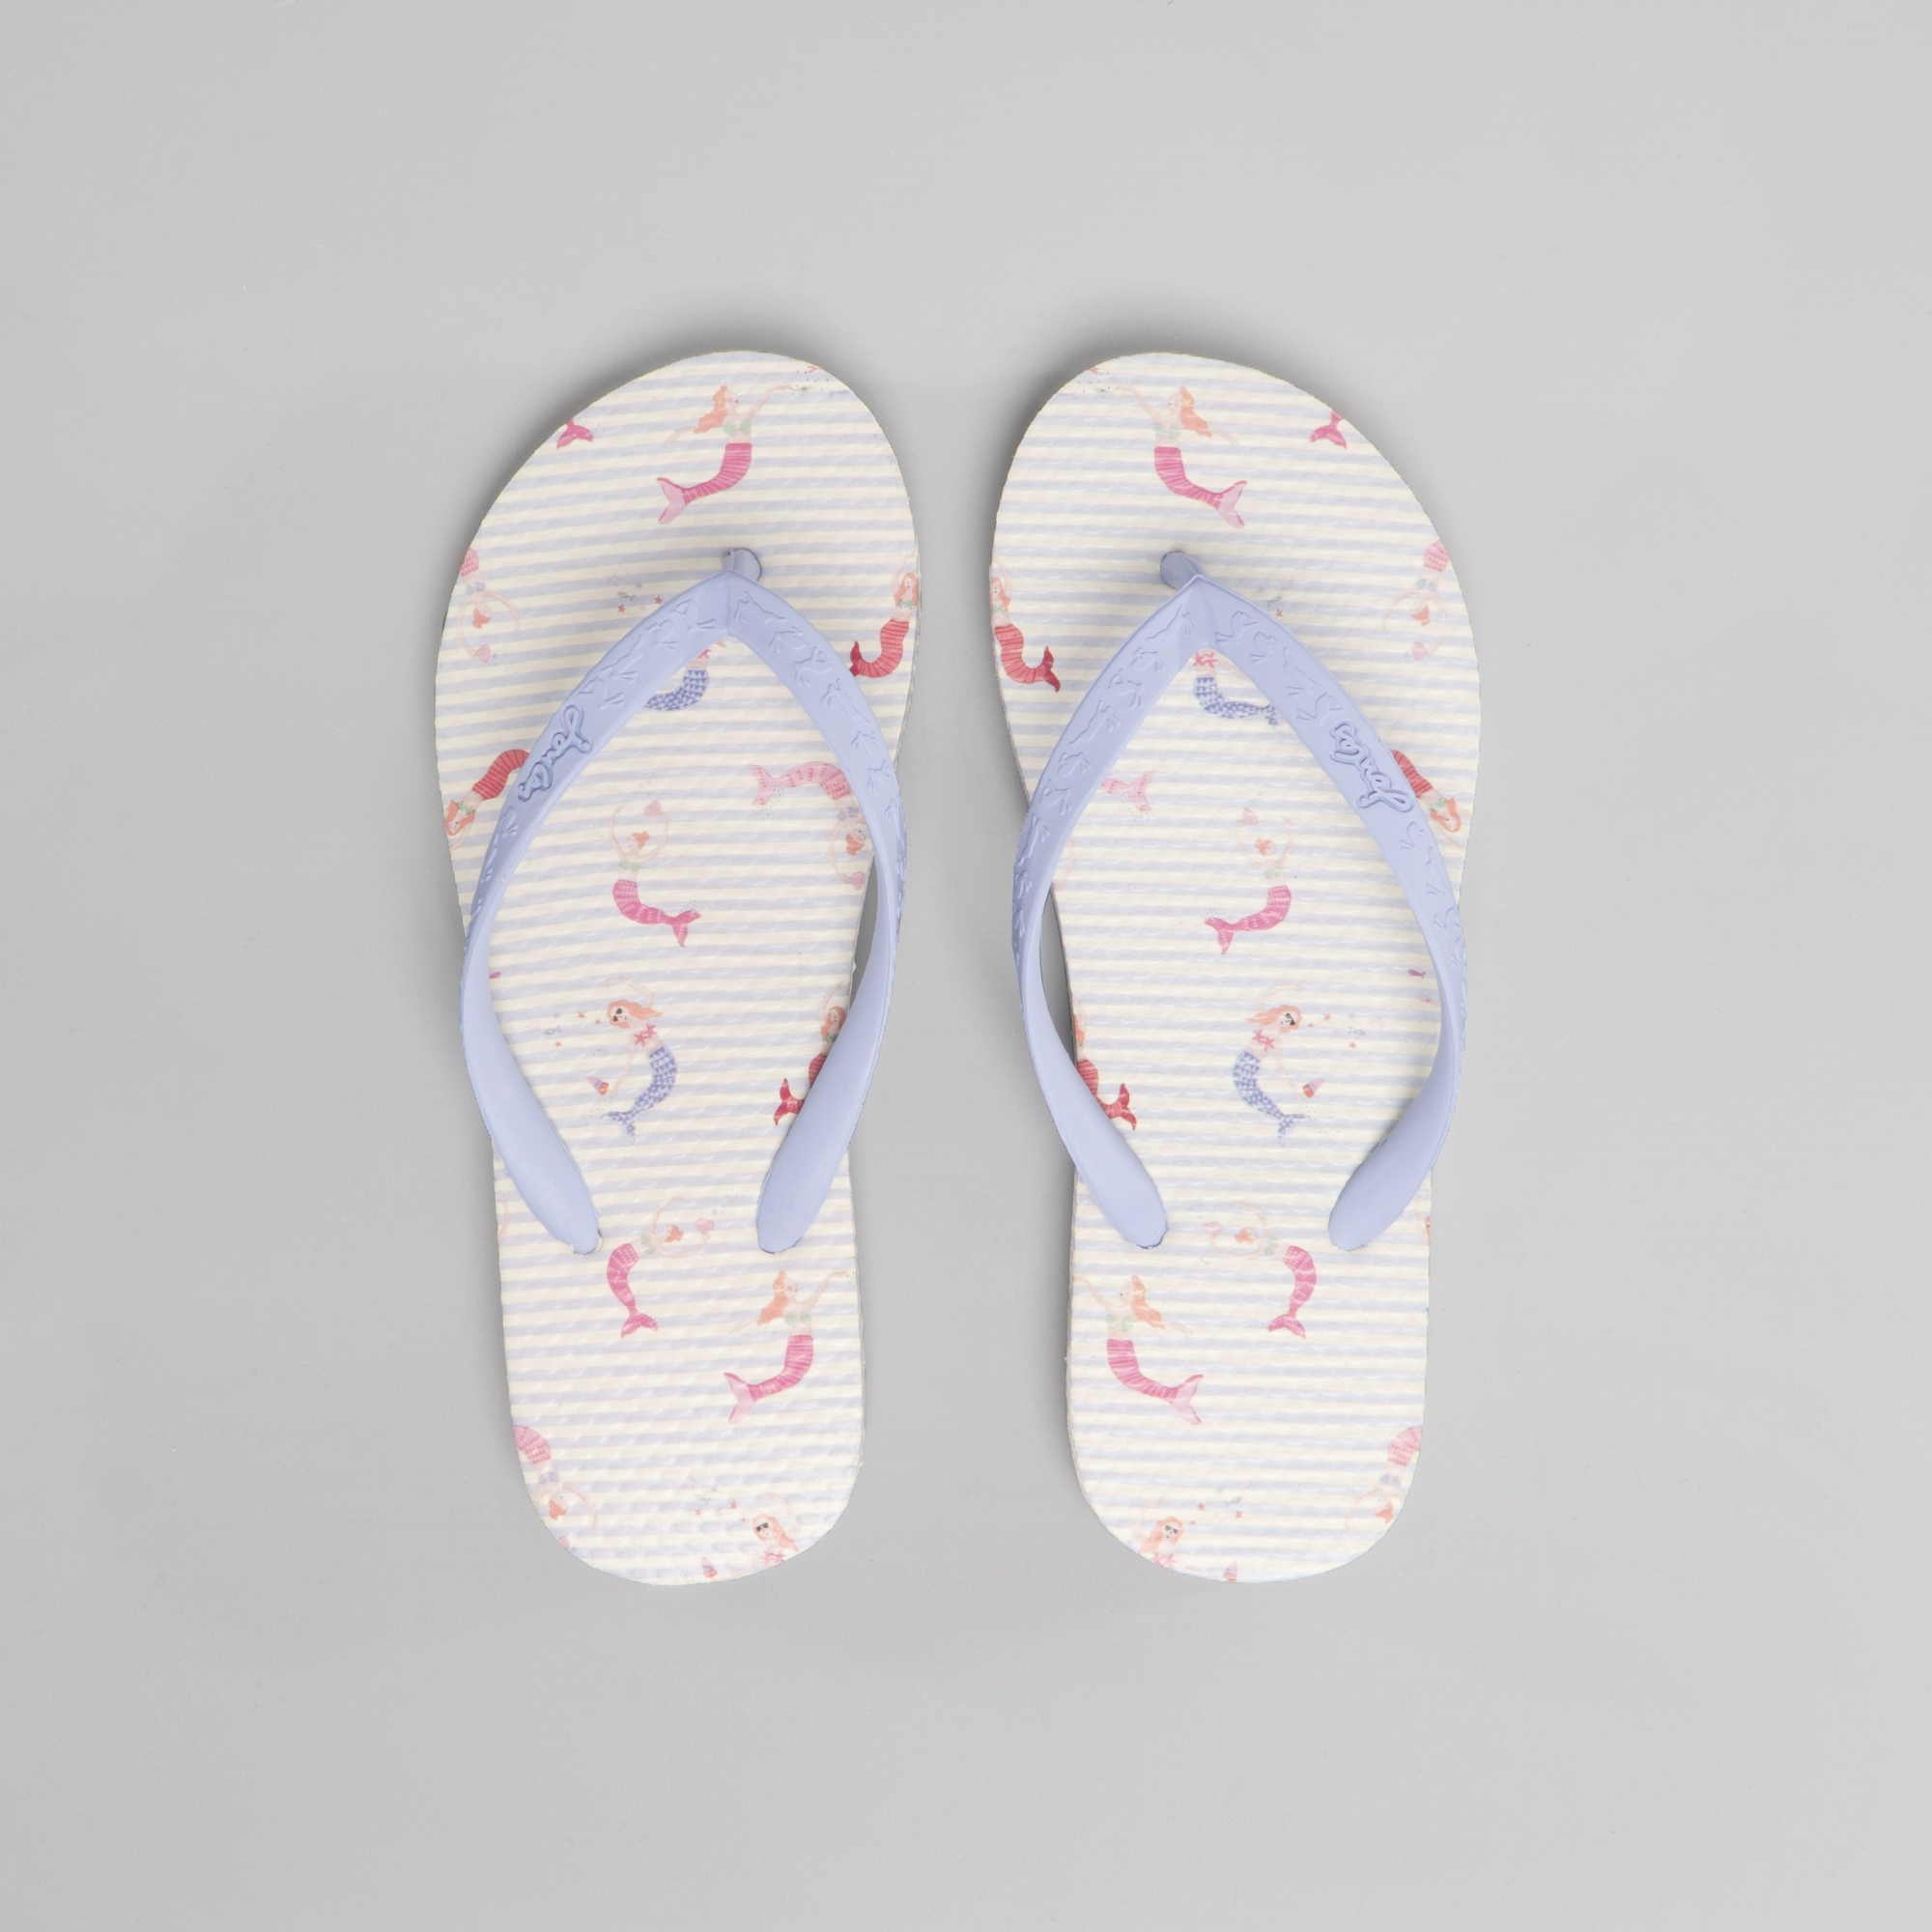 reliable quality variety styles of 2019 high quality guarantee Joules 201367 Girls Flip Flops Cream Mermaid Stripe